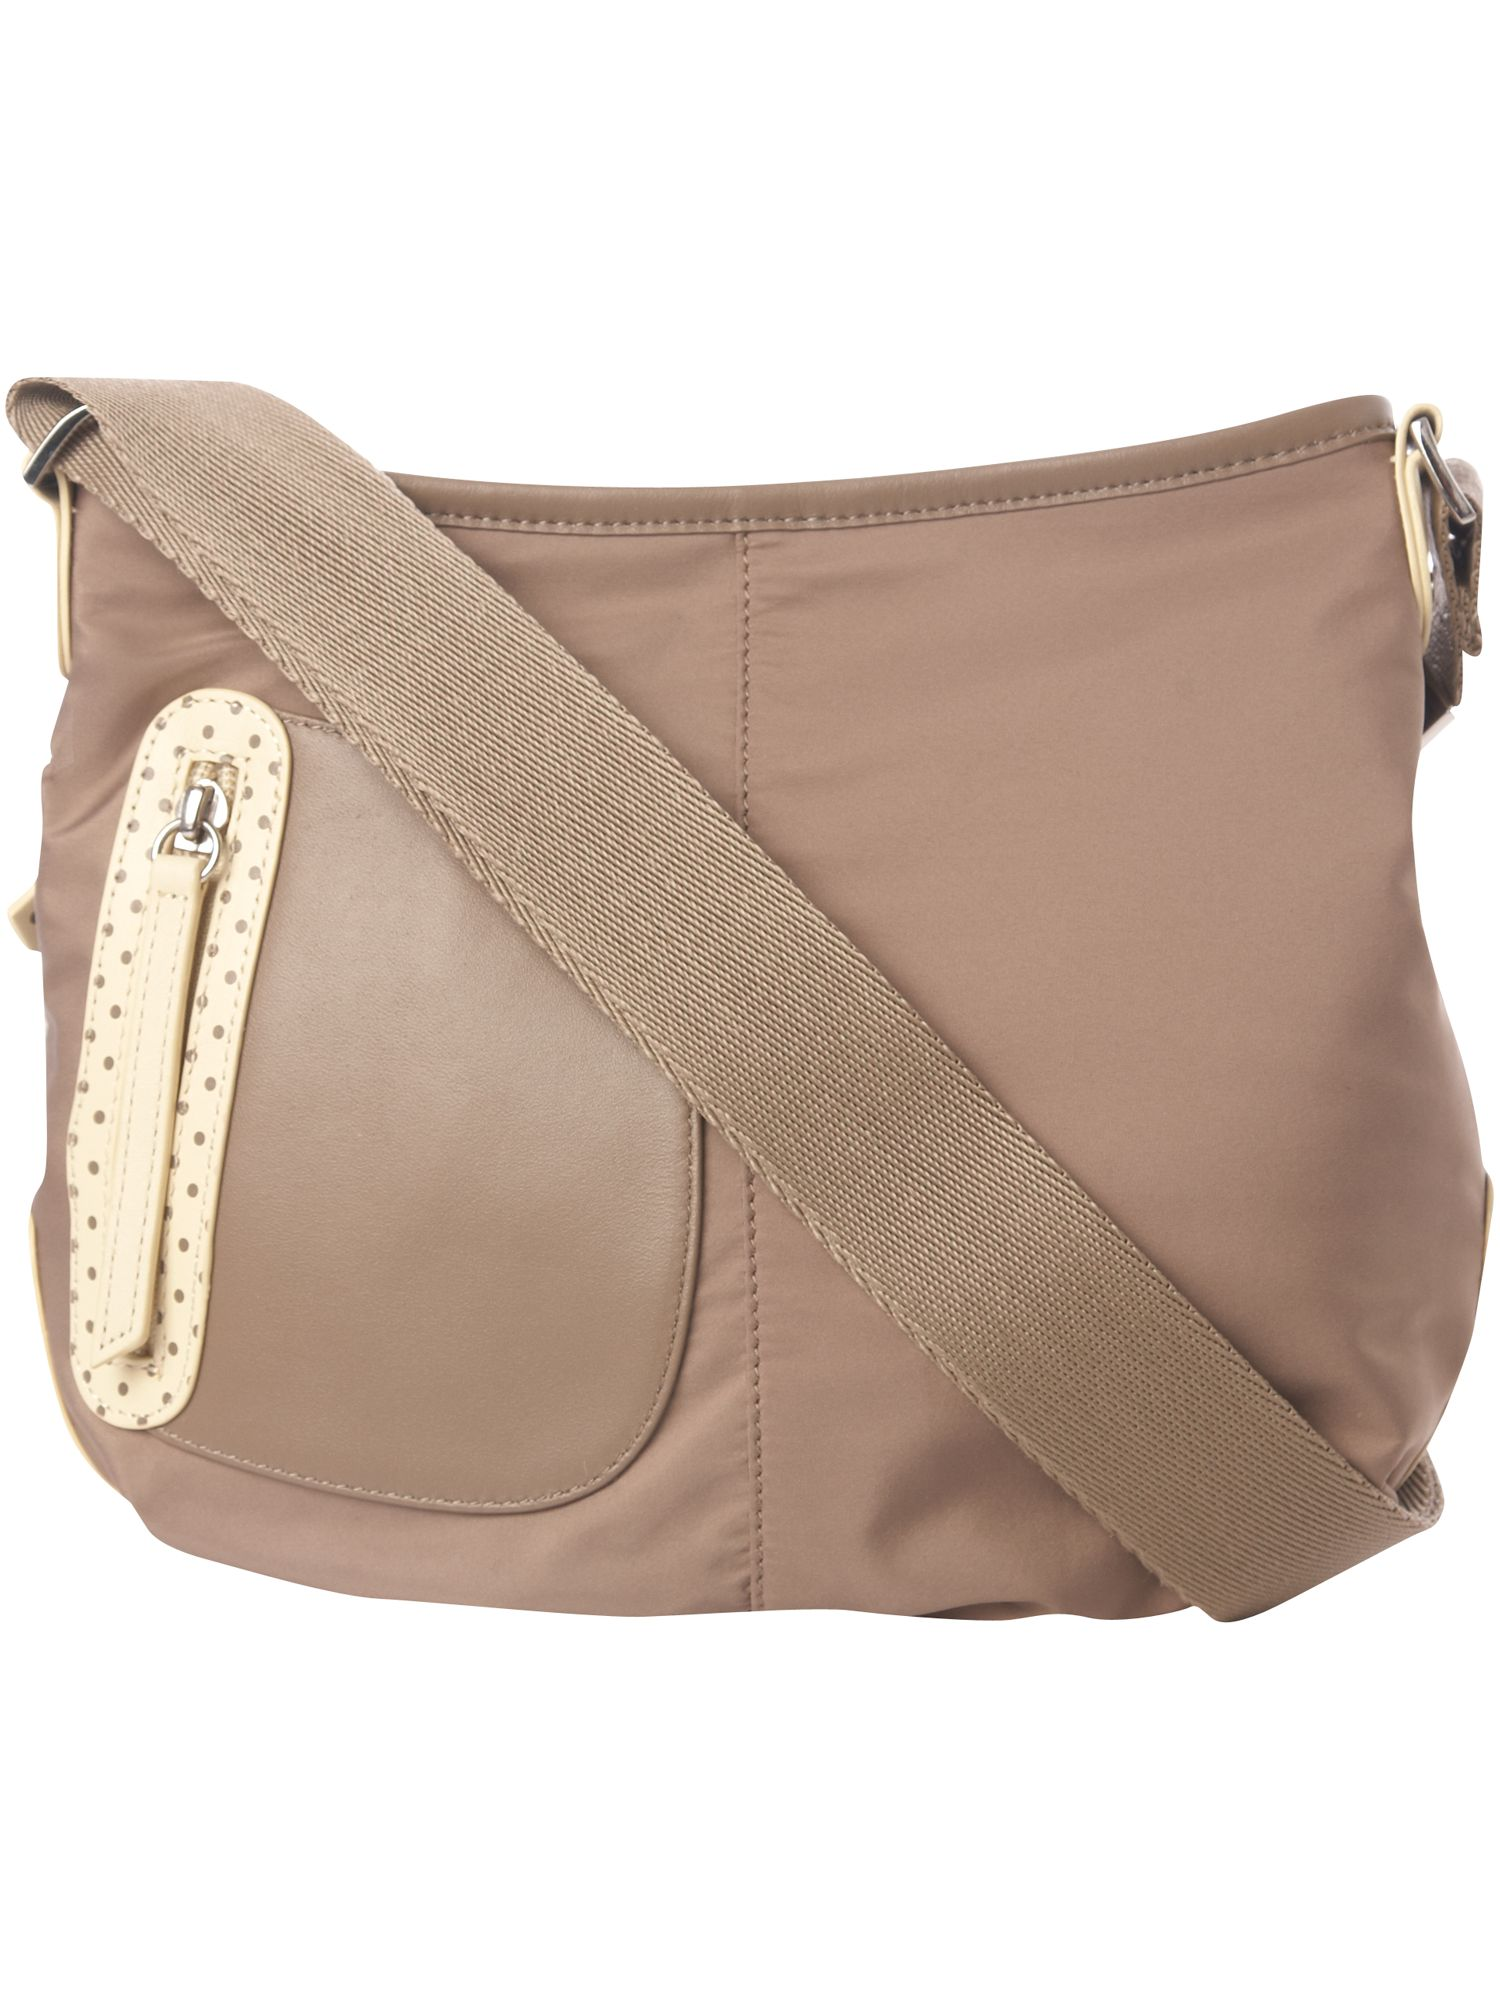 Pursuit nylon small cross body bag